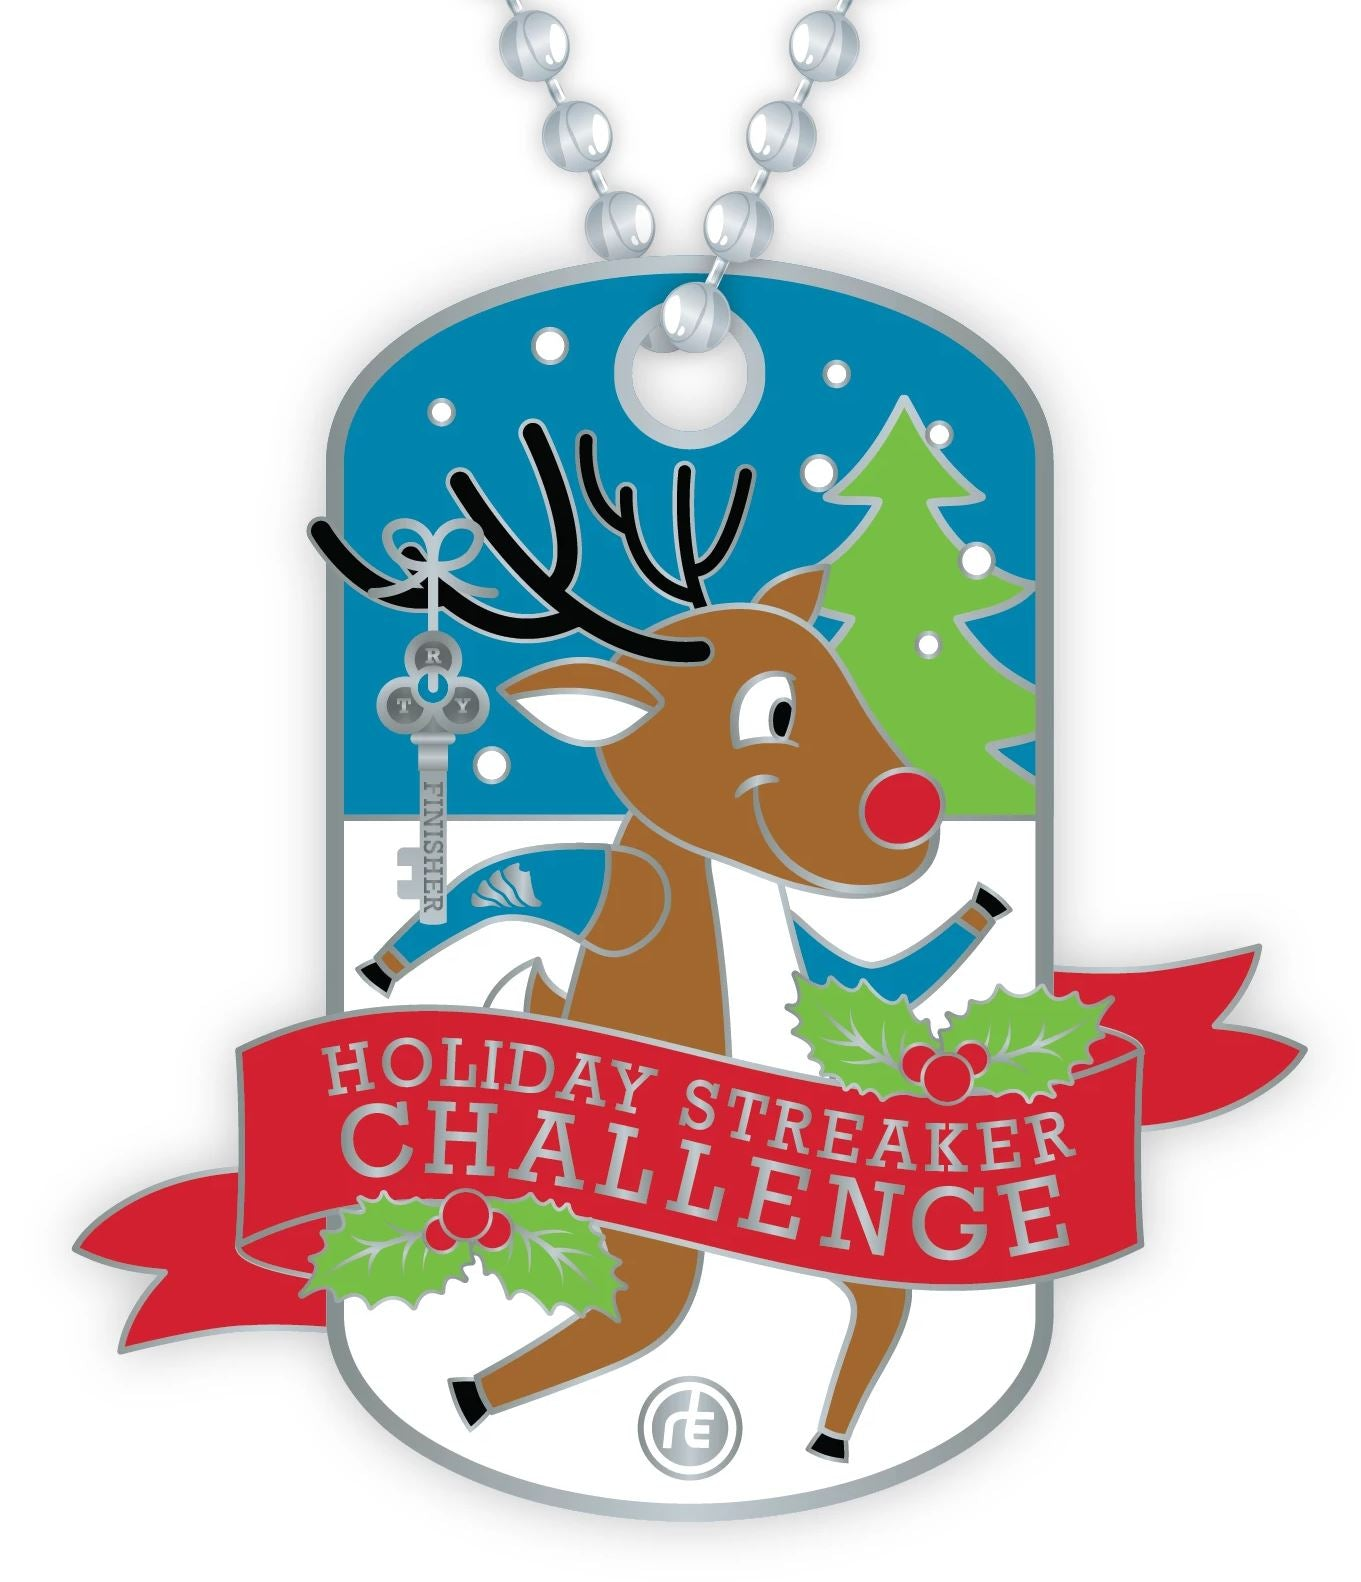 2020 Holiday Streaker Dog Tag Medals Run The Edge Store